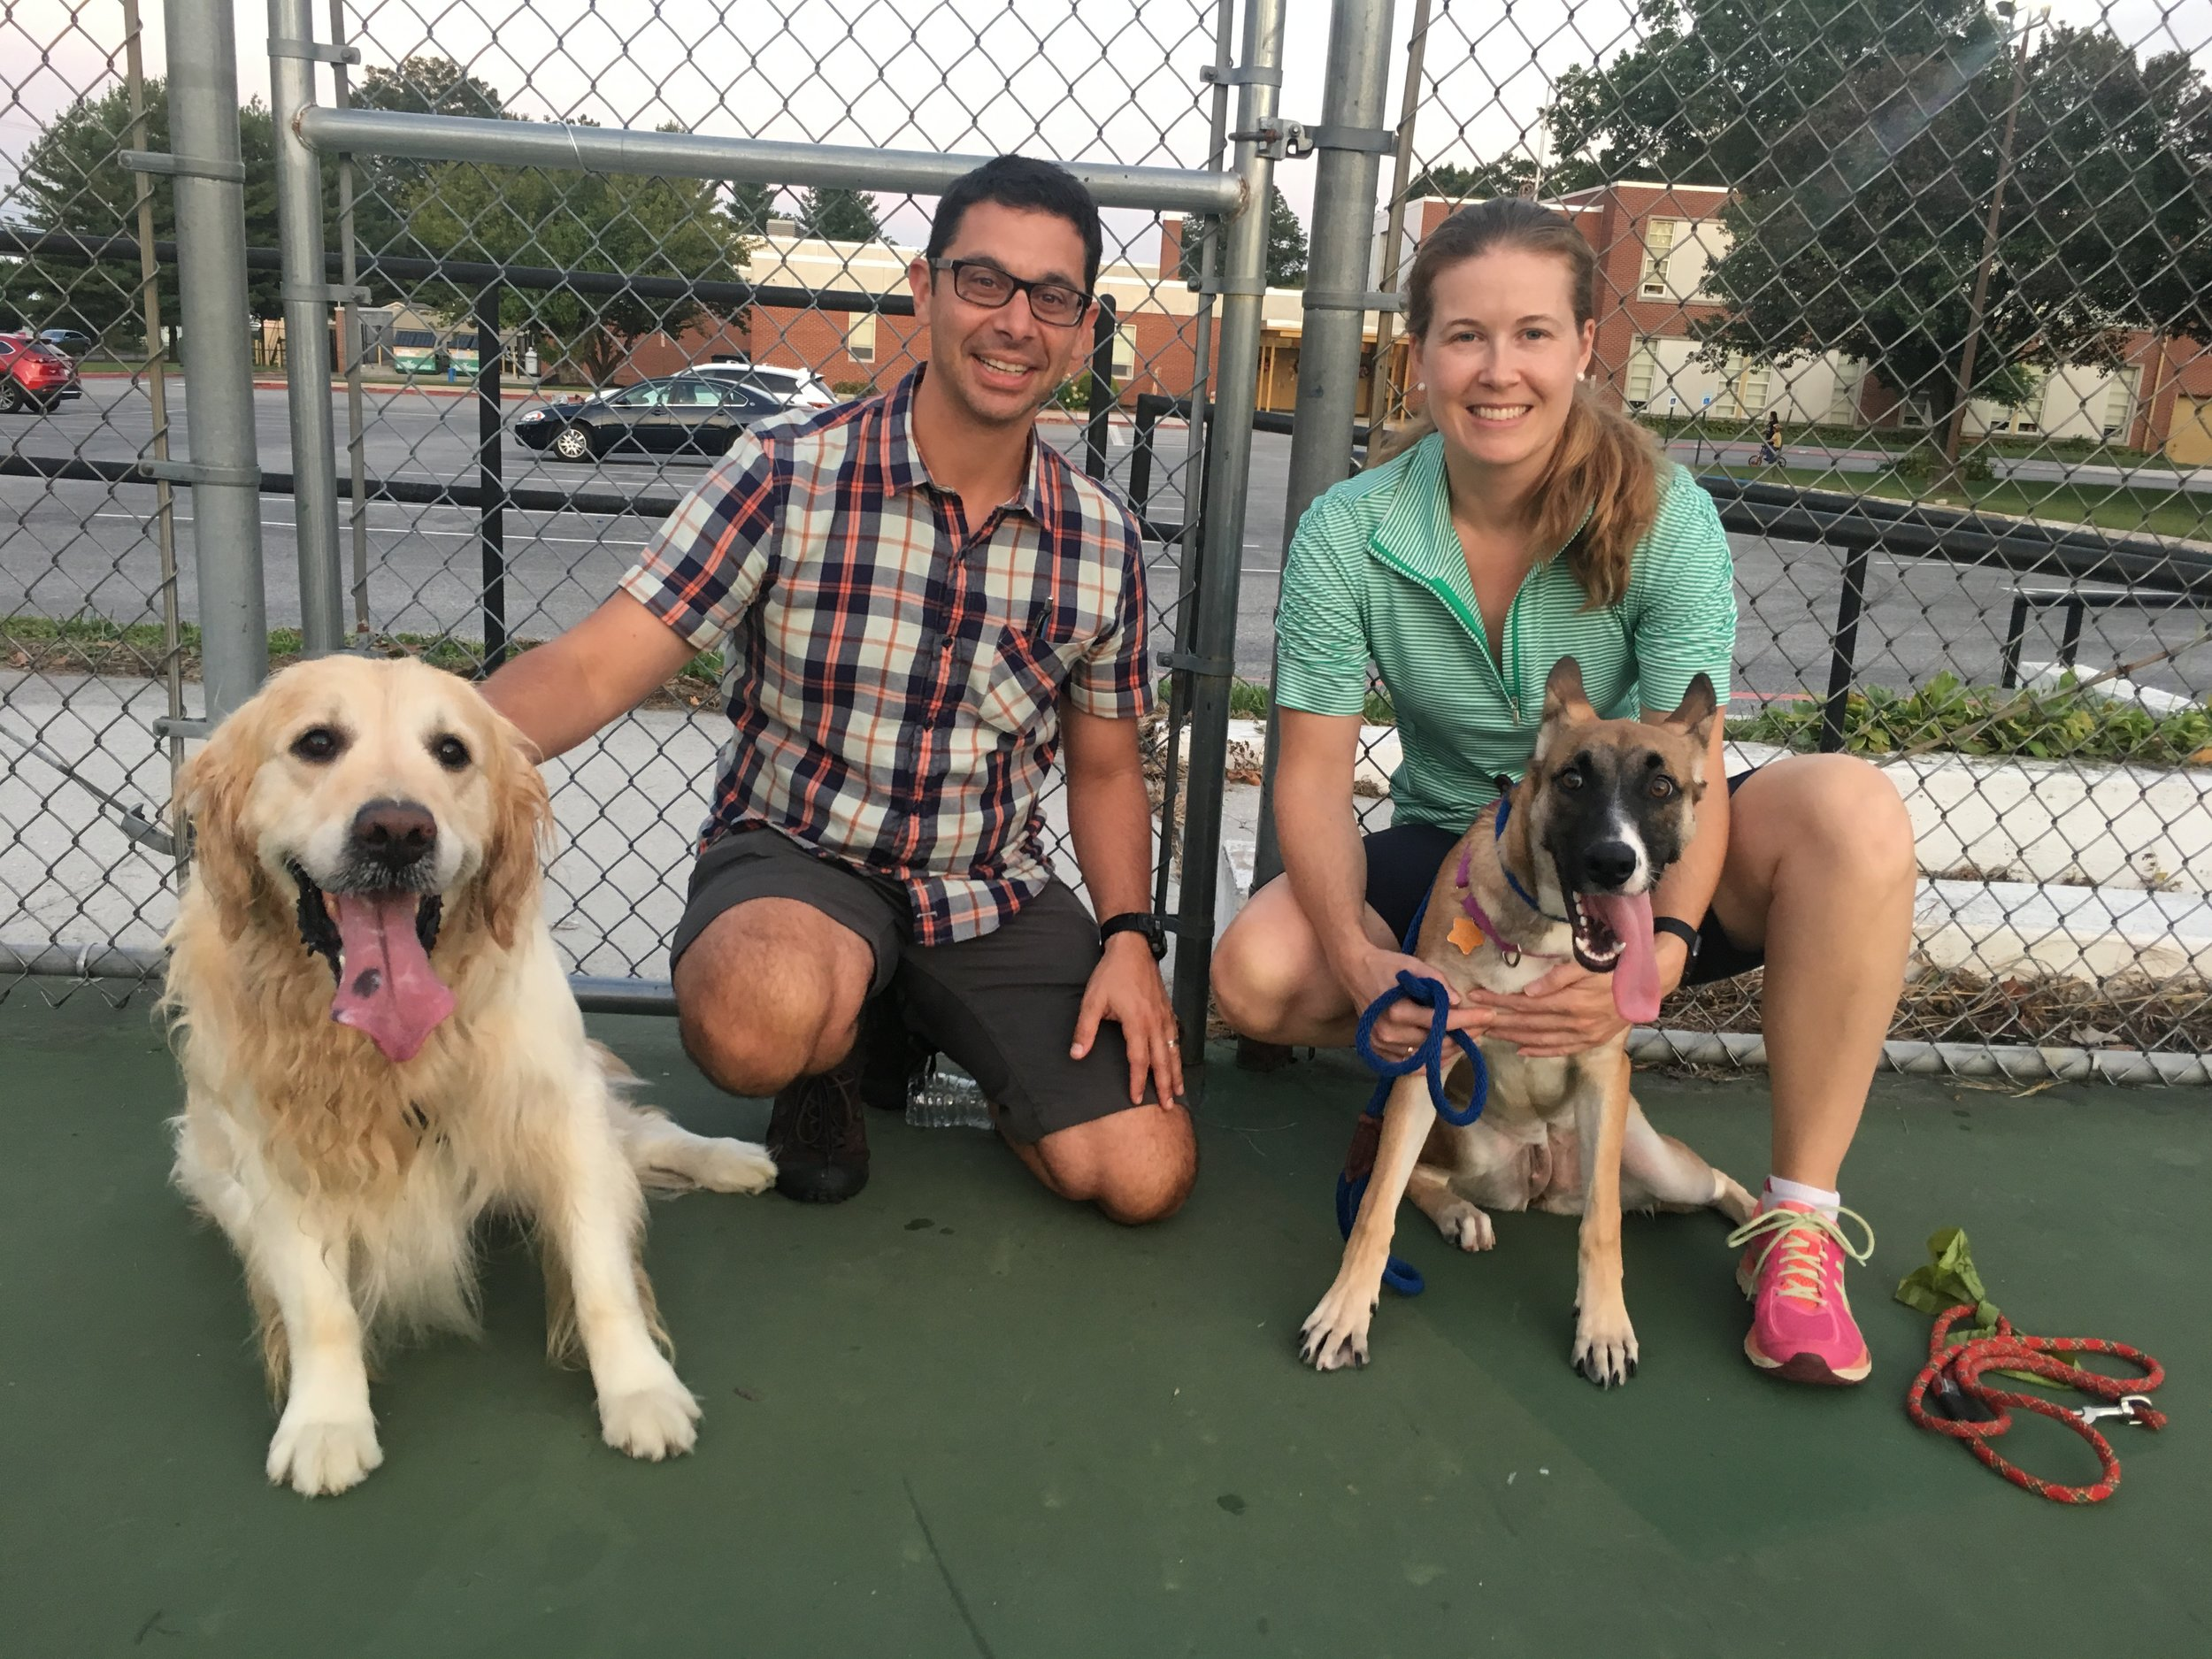 Cleo had a family waiting for her arrival from NC!